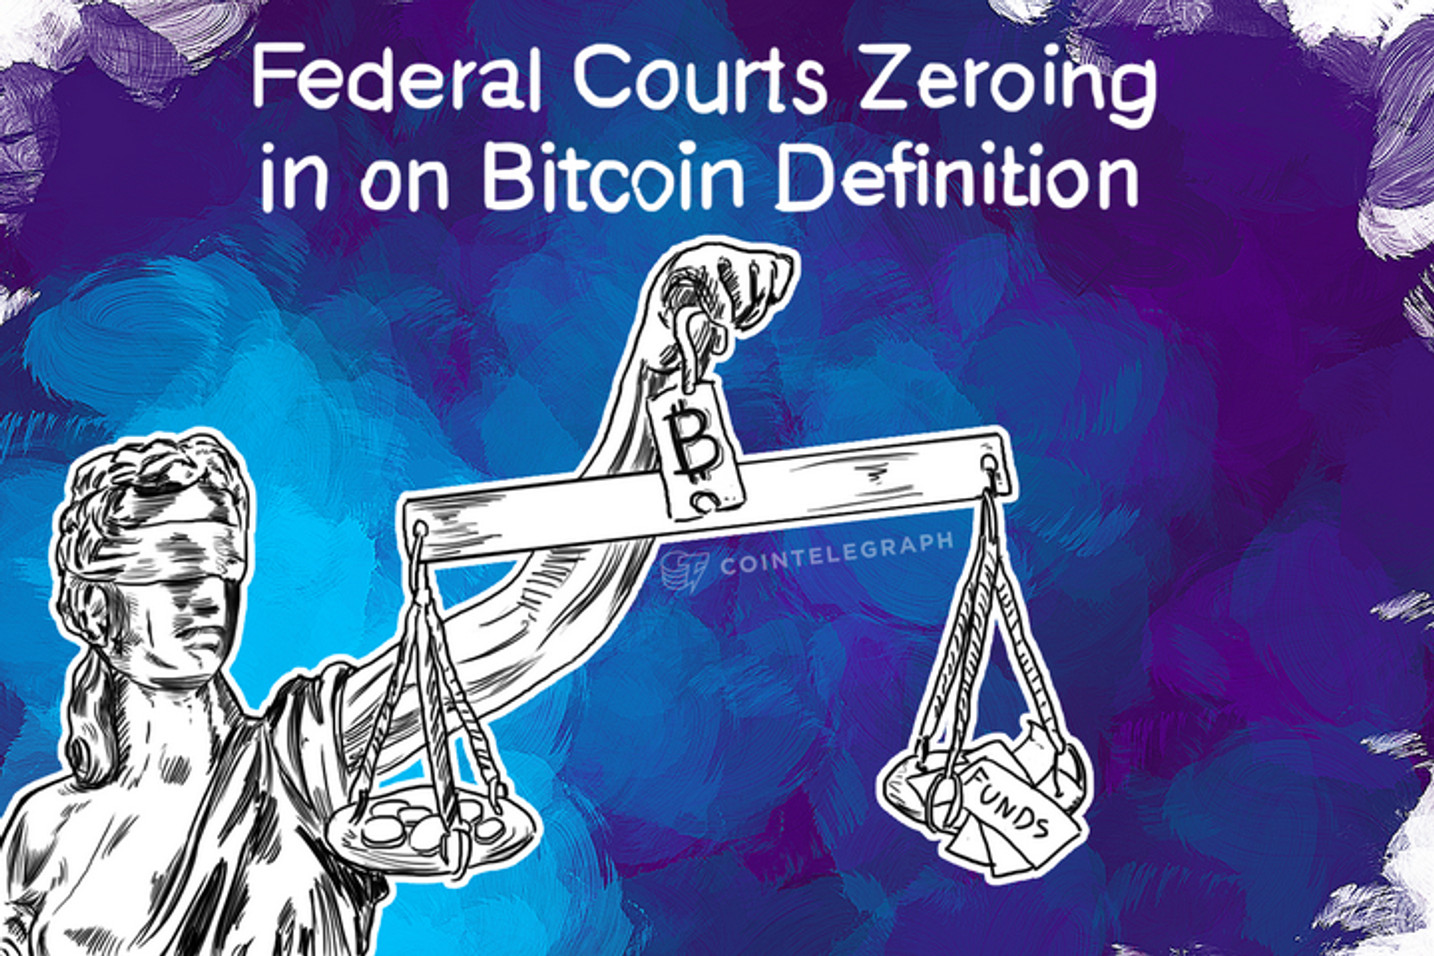 Federal Courts Zeroing in on Bitcoin Definition